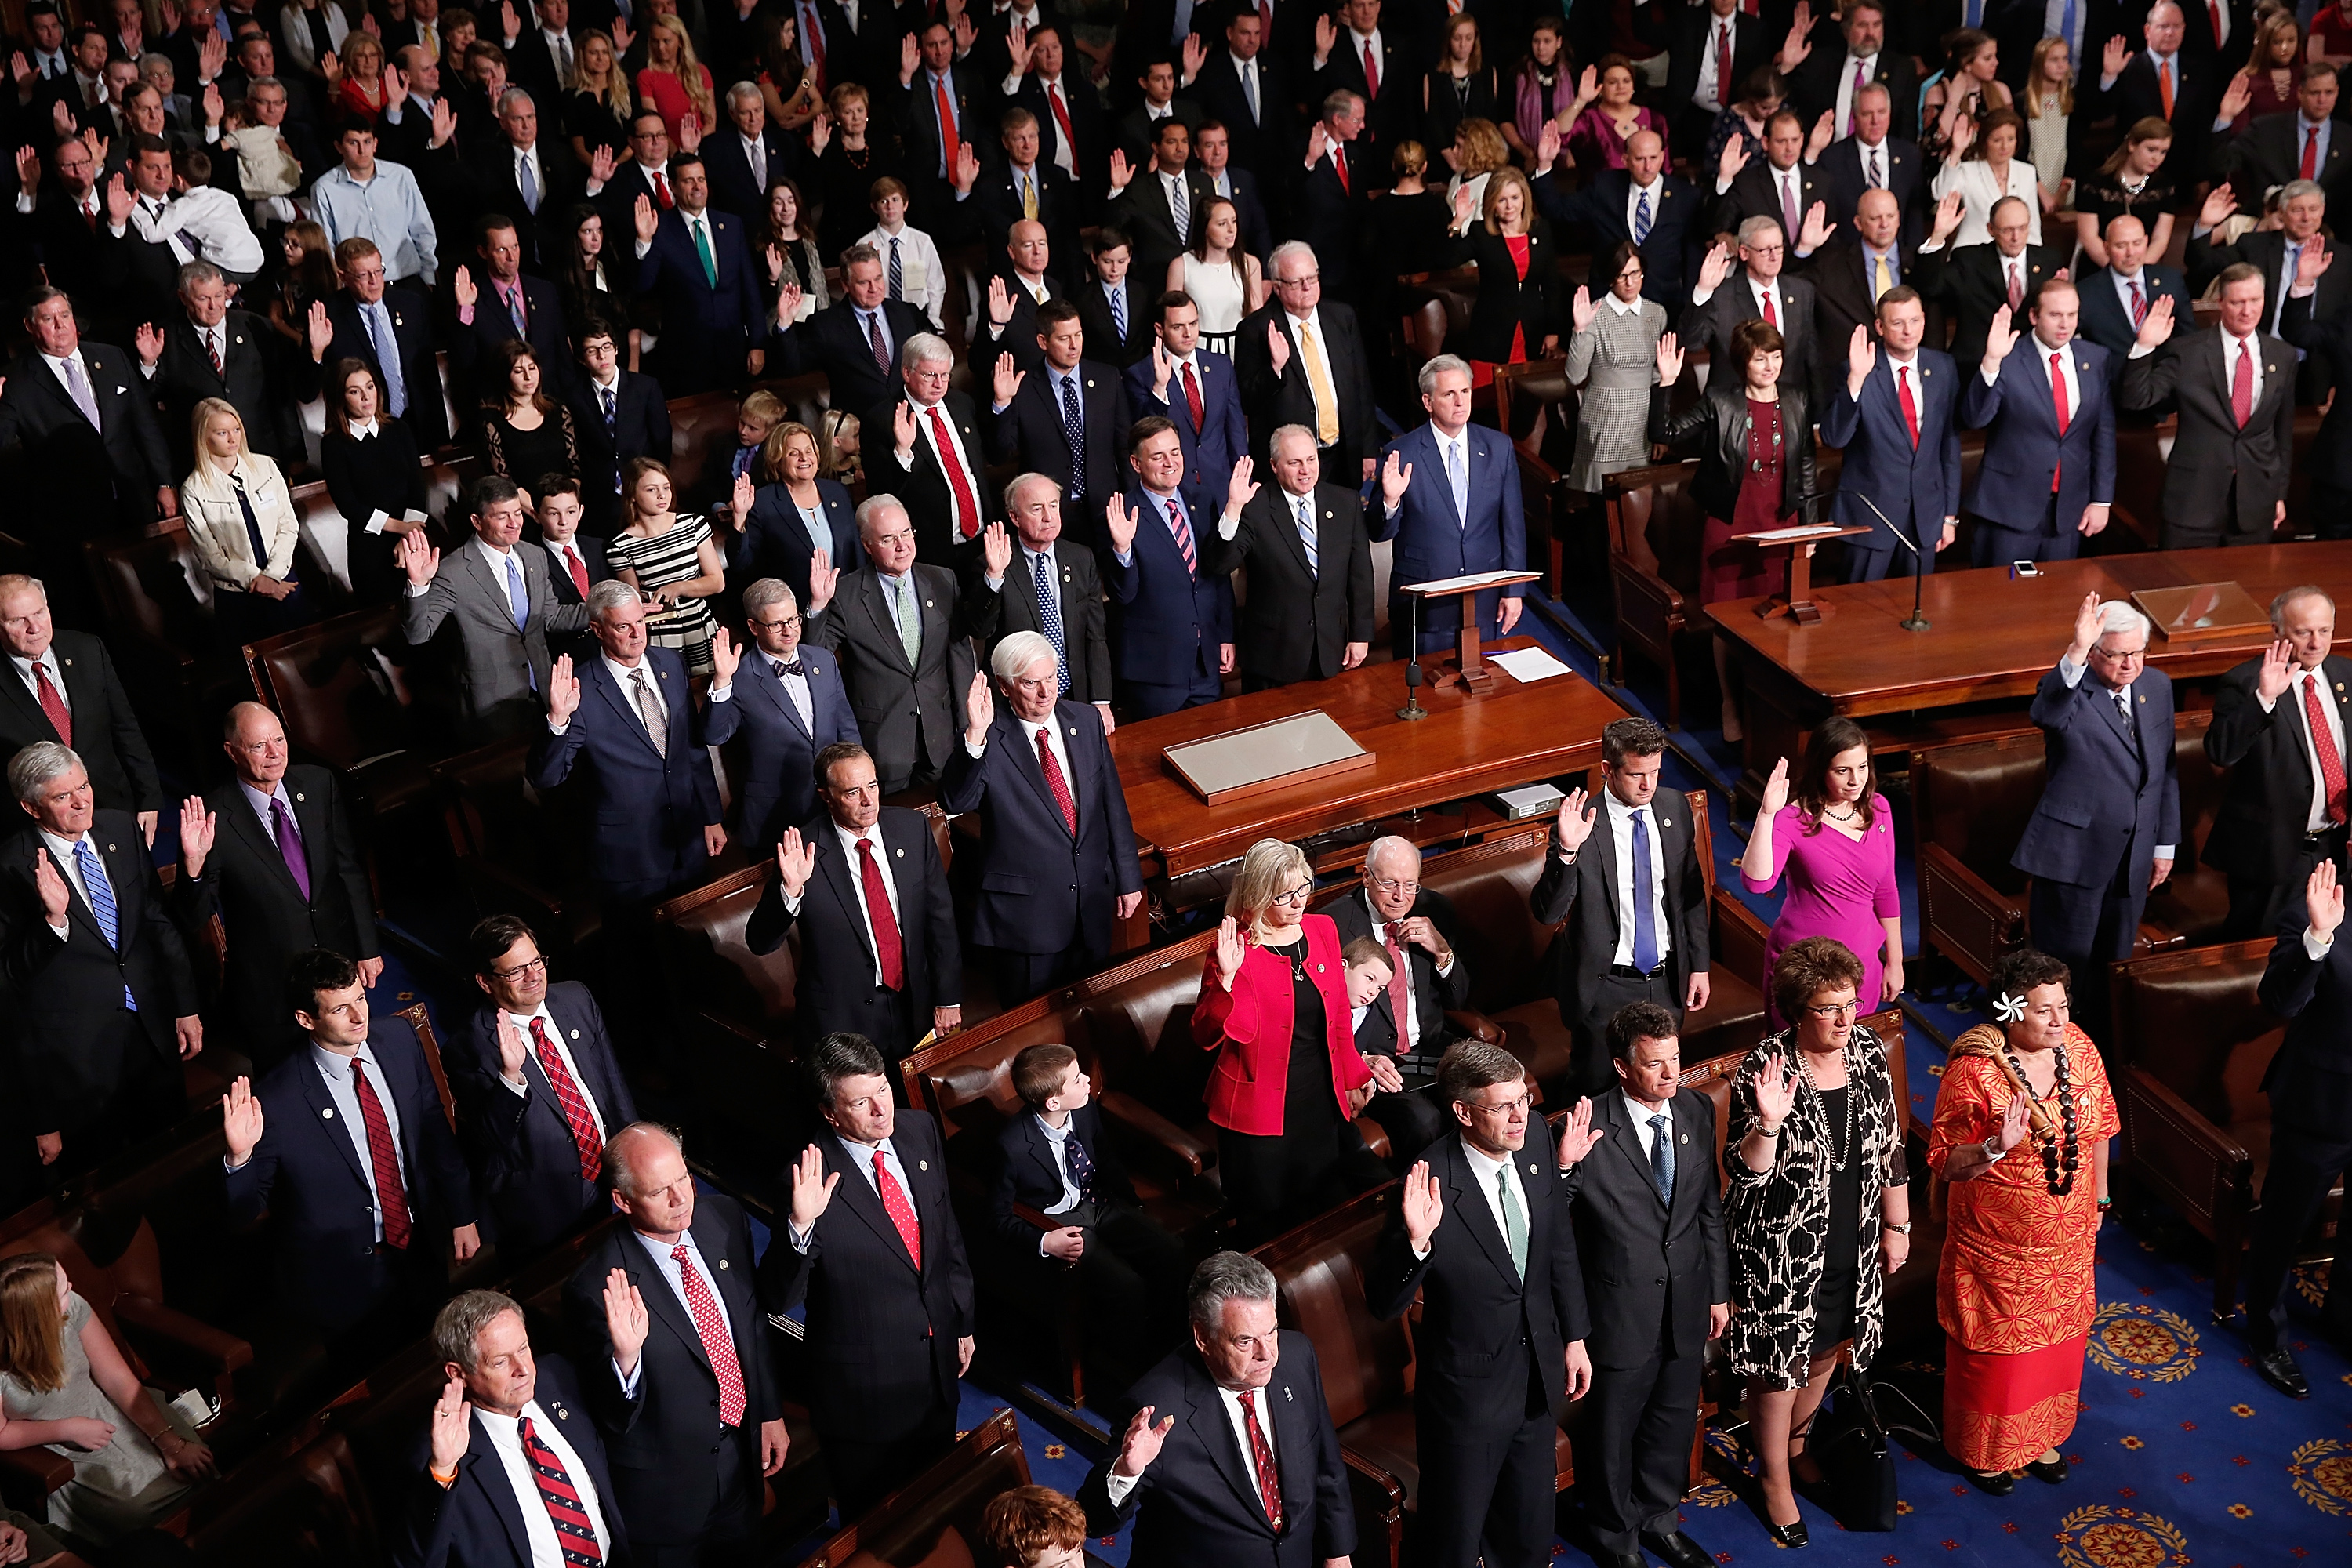 A Changing Of The Guard As The 115th U.S. Congress Convenes